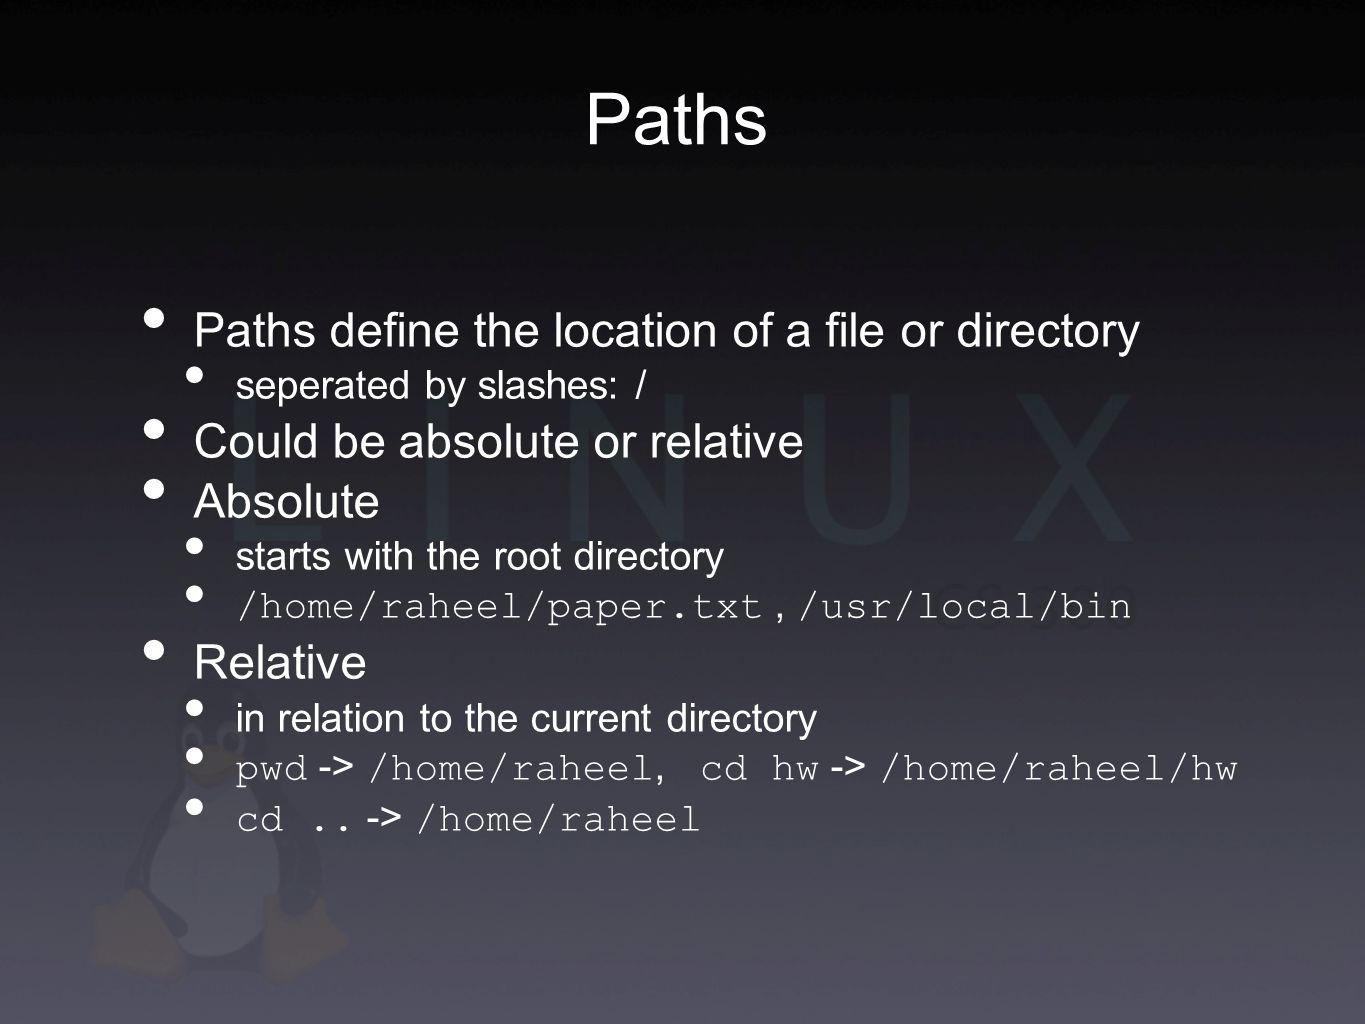 Paths define the location of a file or directory seperated by slashes: / Could be absolute or relative Absolute starts with the root directory /home/raheel/paper.txt, /usr/local/bin Relative in relation to the current directory pwd -> /home/raheel, cd hw -> /home/raheel/hw cd..